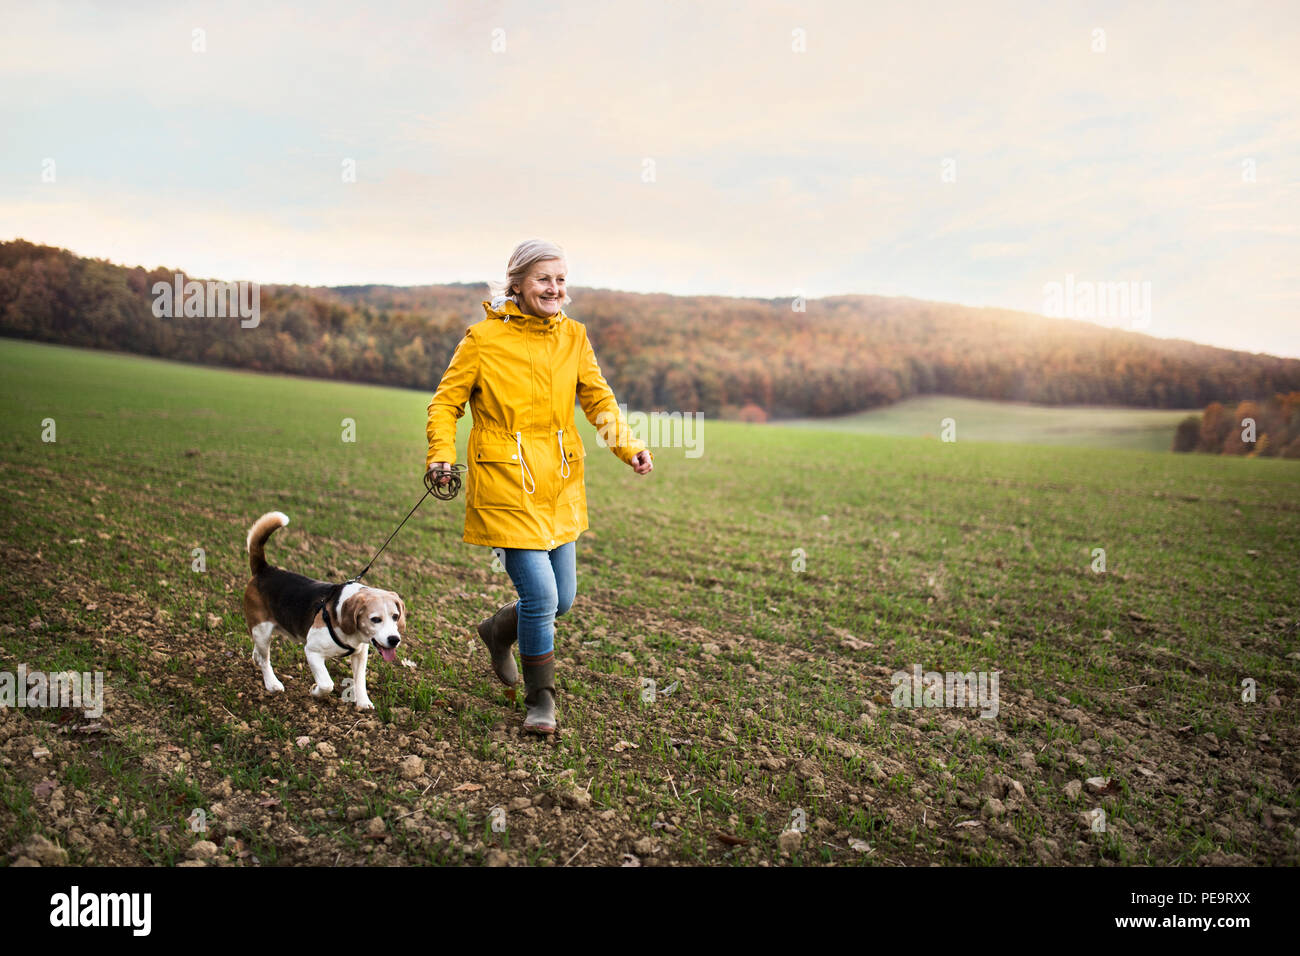 Senior woman with dog on a walk in an autumn nature. - Stock Image